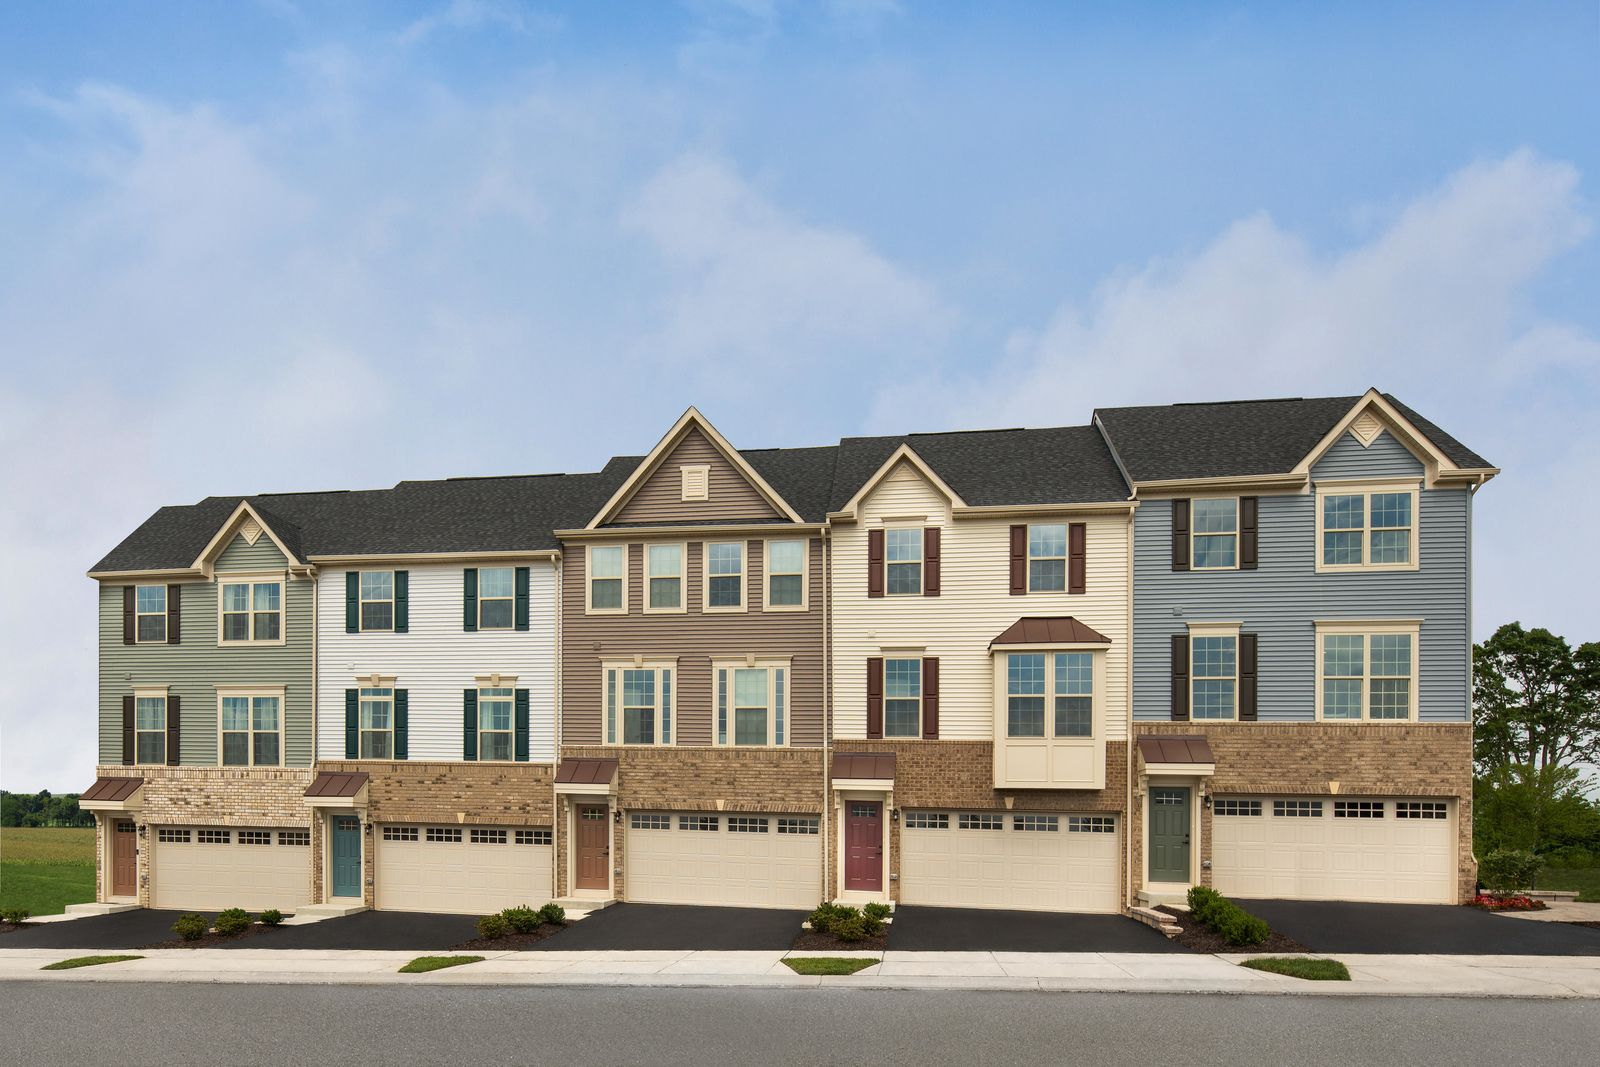 WELCOME TO LAKE LINGANORE HAMPTONS IN NEW MARKET, MD:Own a townhome with luxury features included in a resort-style community and walkable to the lake and new elementary school.Schedule your appointment today!